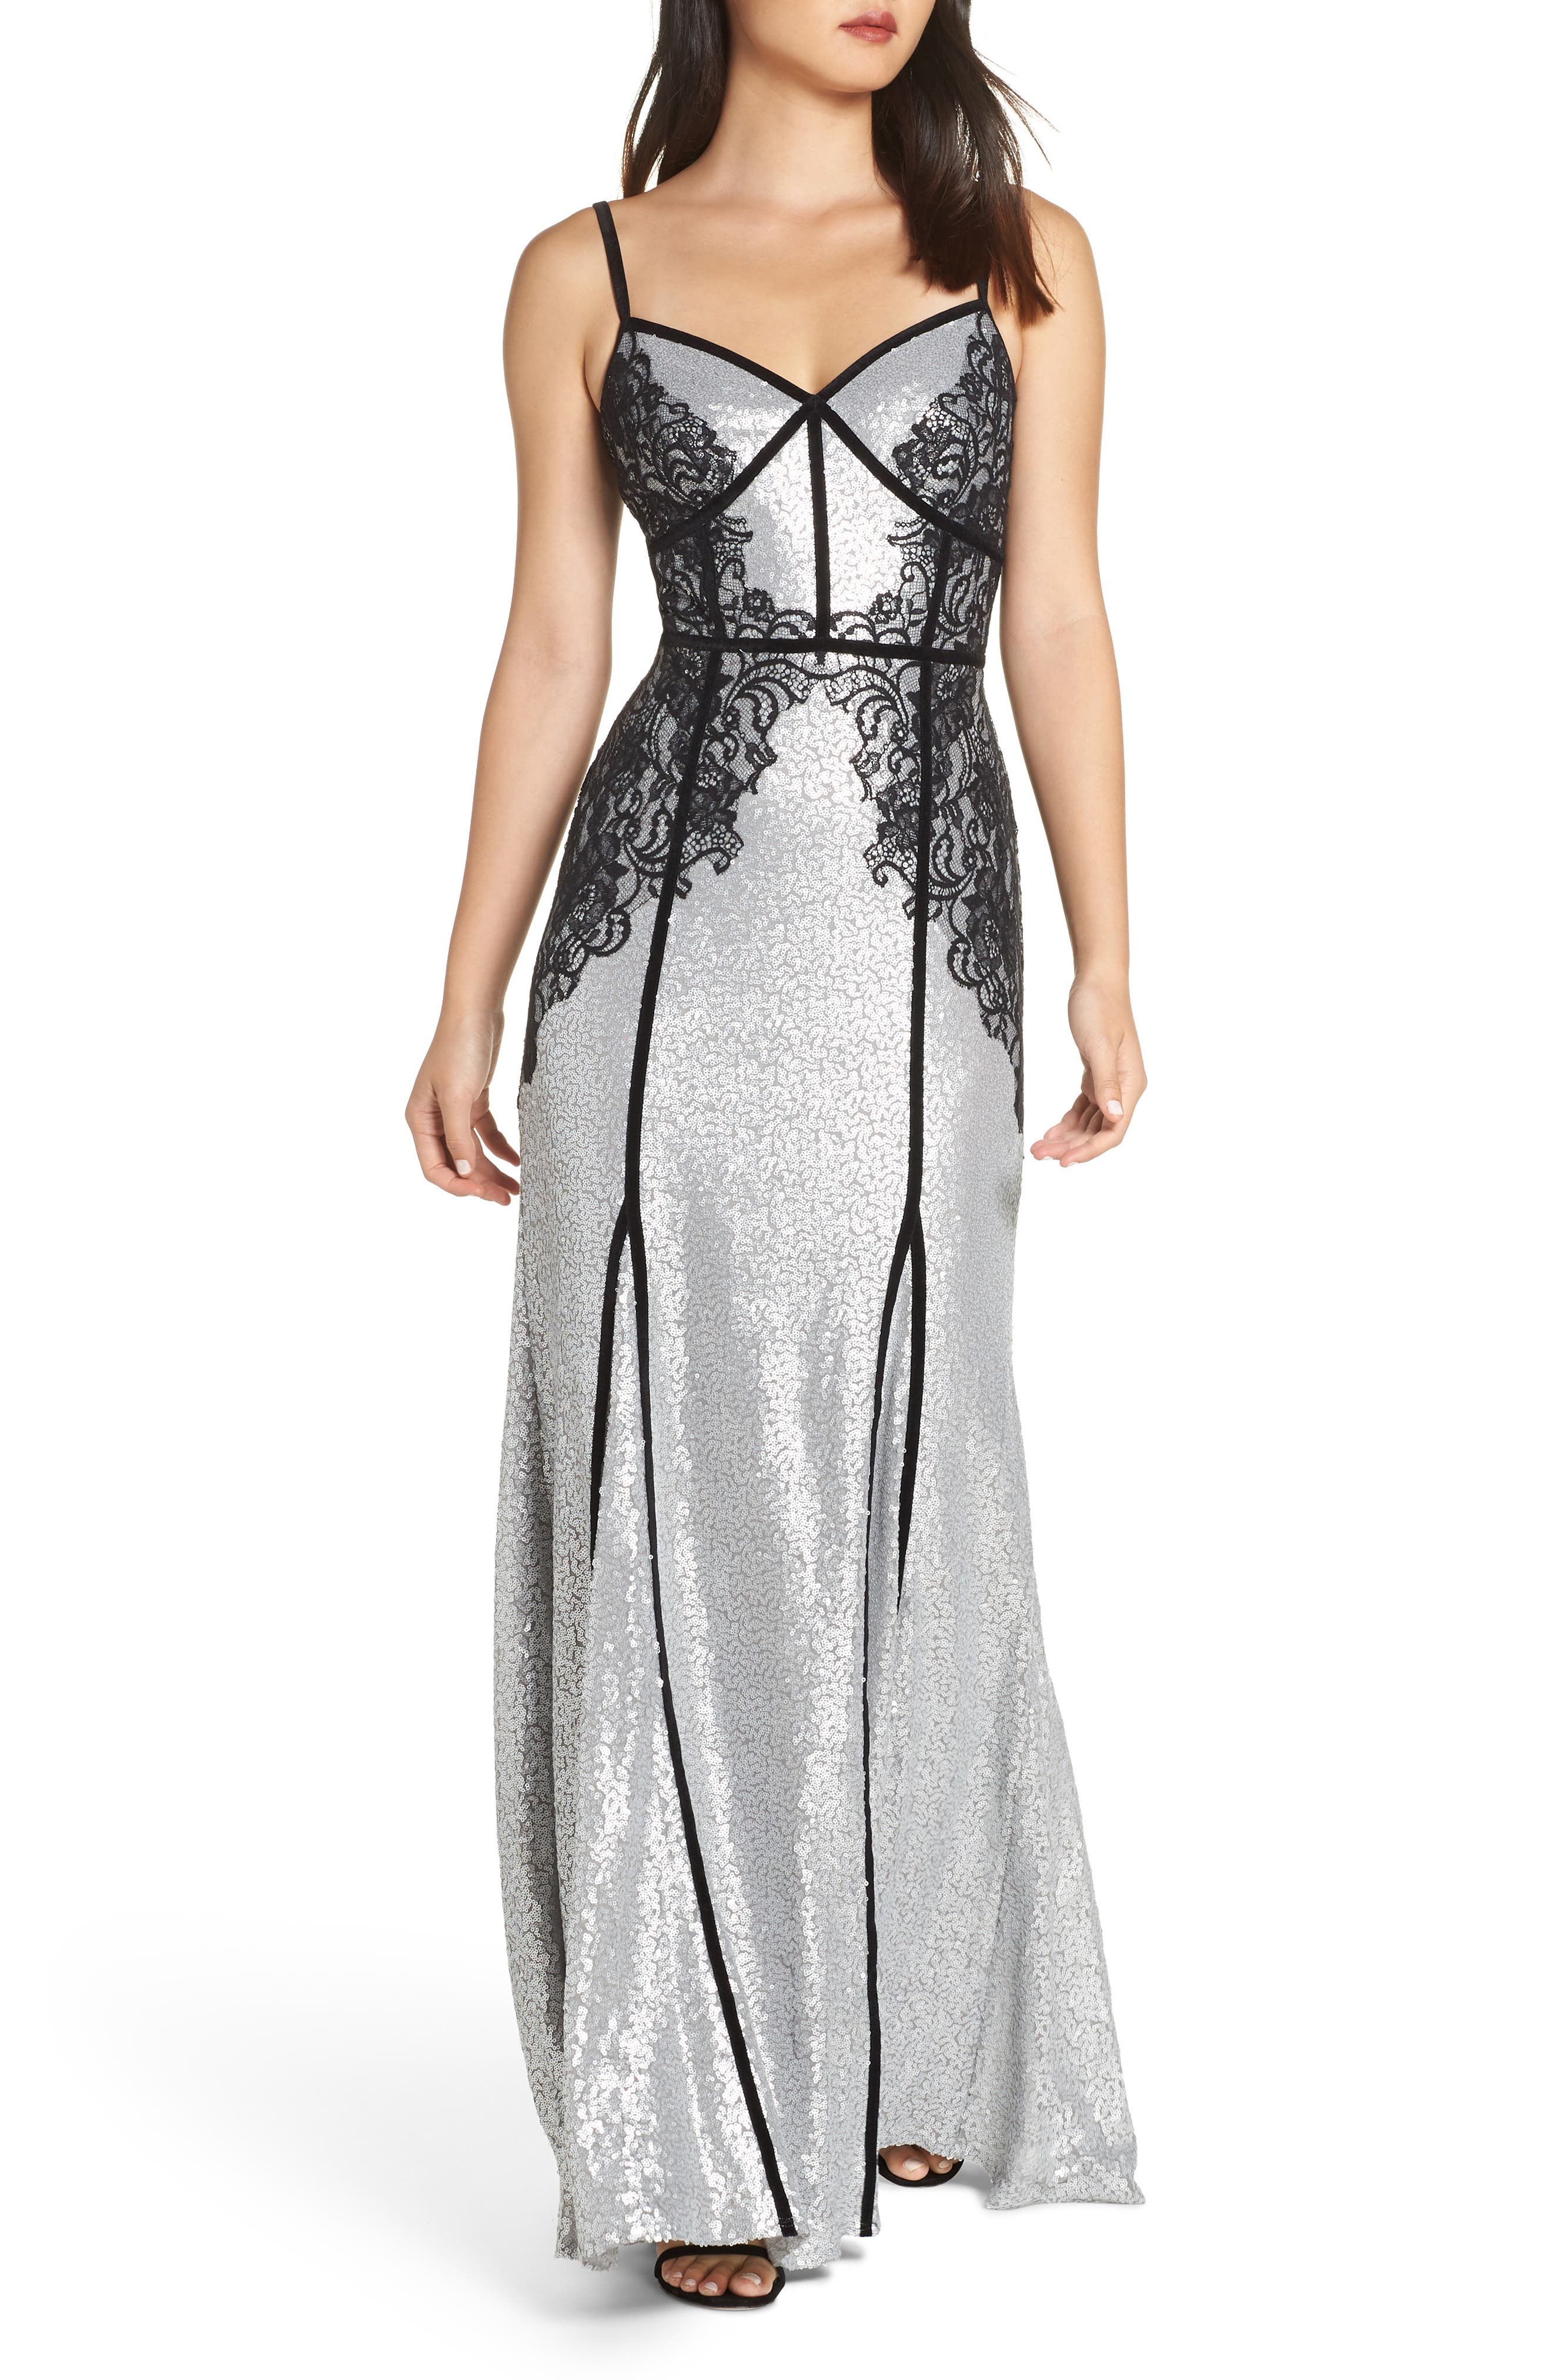 TADASHI SHOJI Sleeveless Sequin & Lace Gown in Silver/ Black